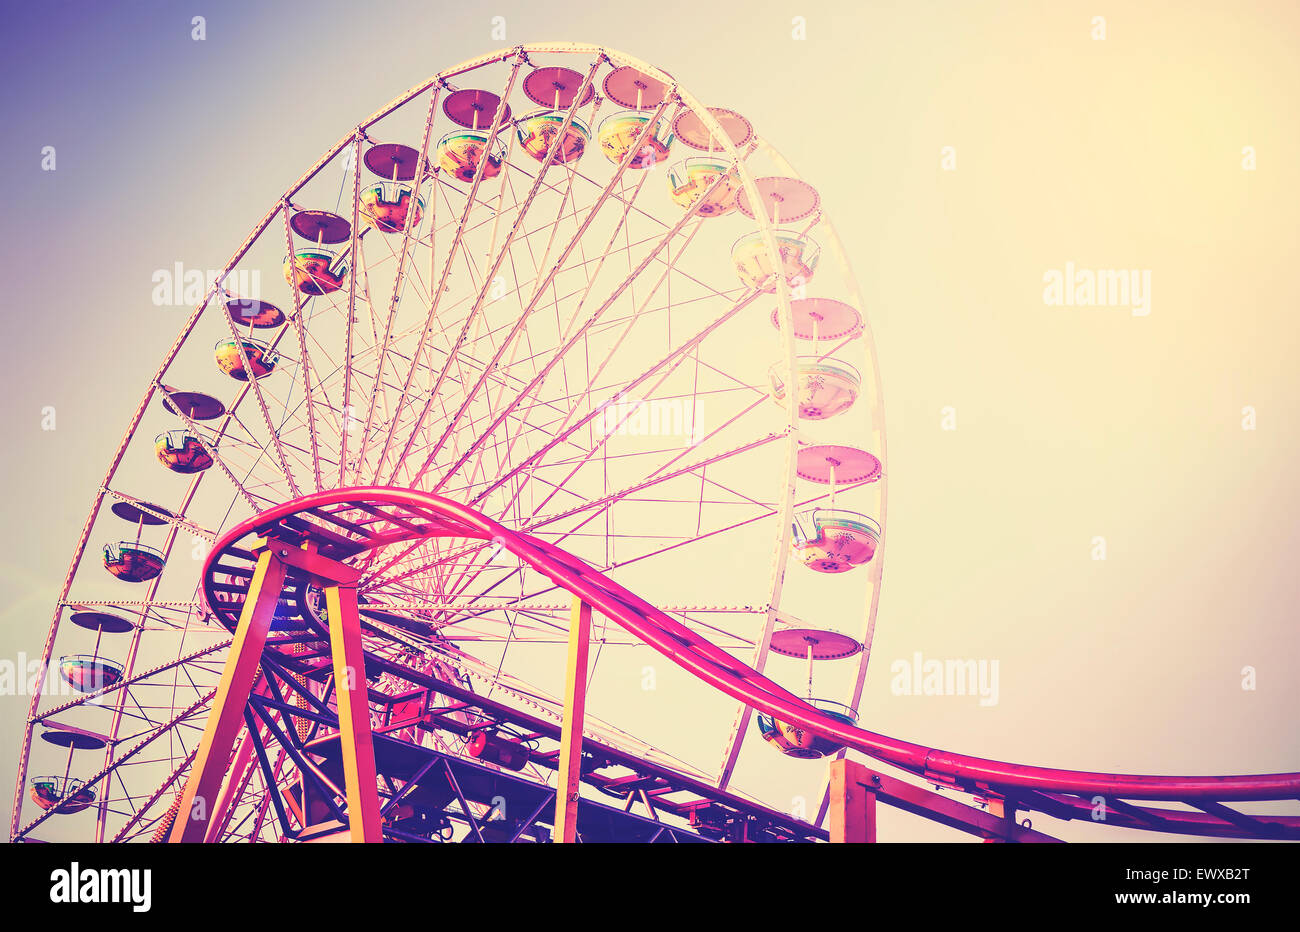 Retro vintage instagram stylized picture of an amusement park. - Stock Image